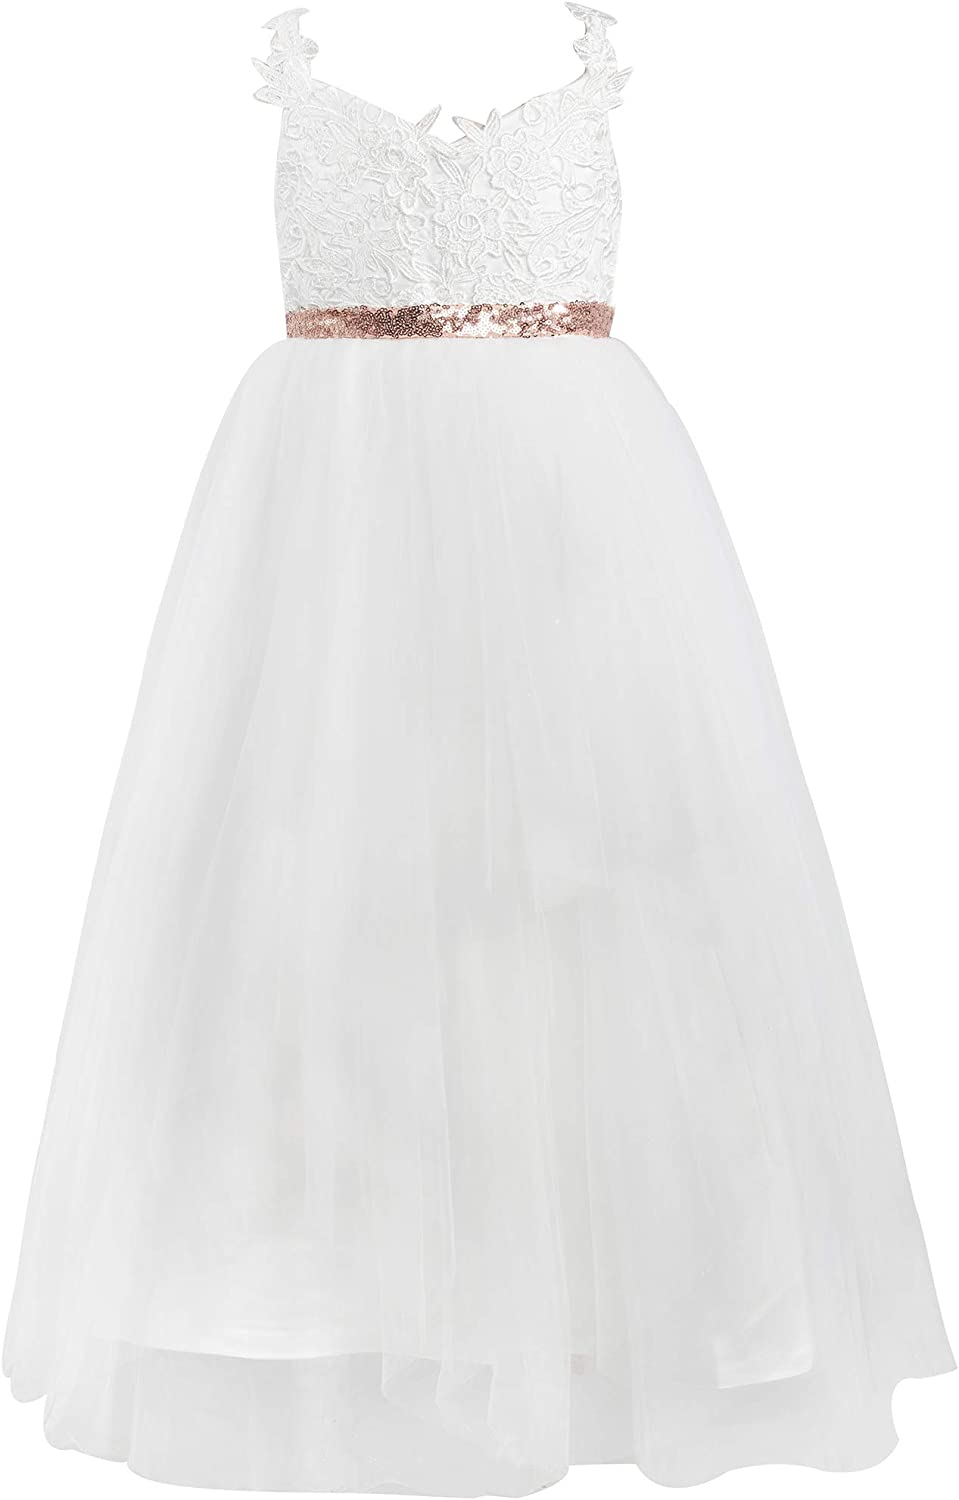 Challenge the lowest price Mrprettys Ivory Lace Tulle Flower Dress Little Weddin Girls Special price for a limited time Girl